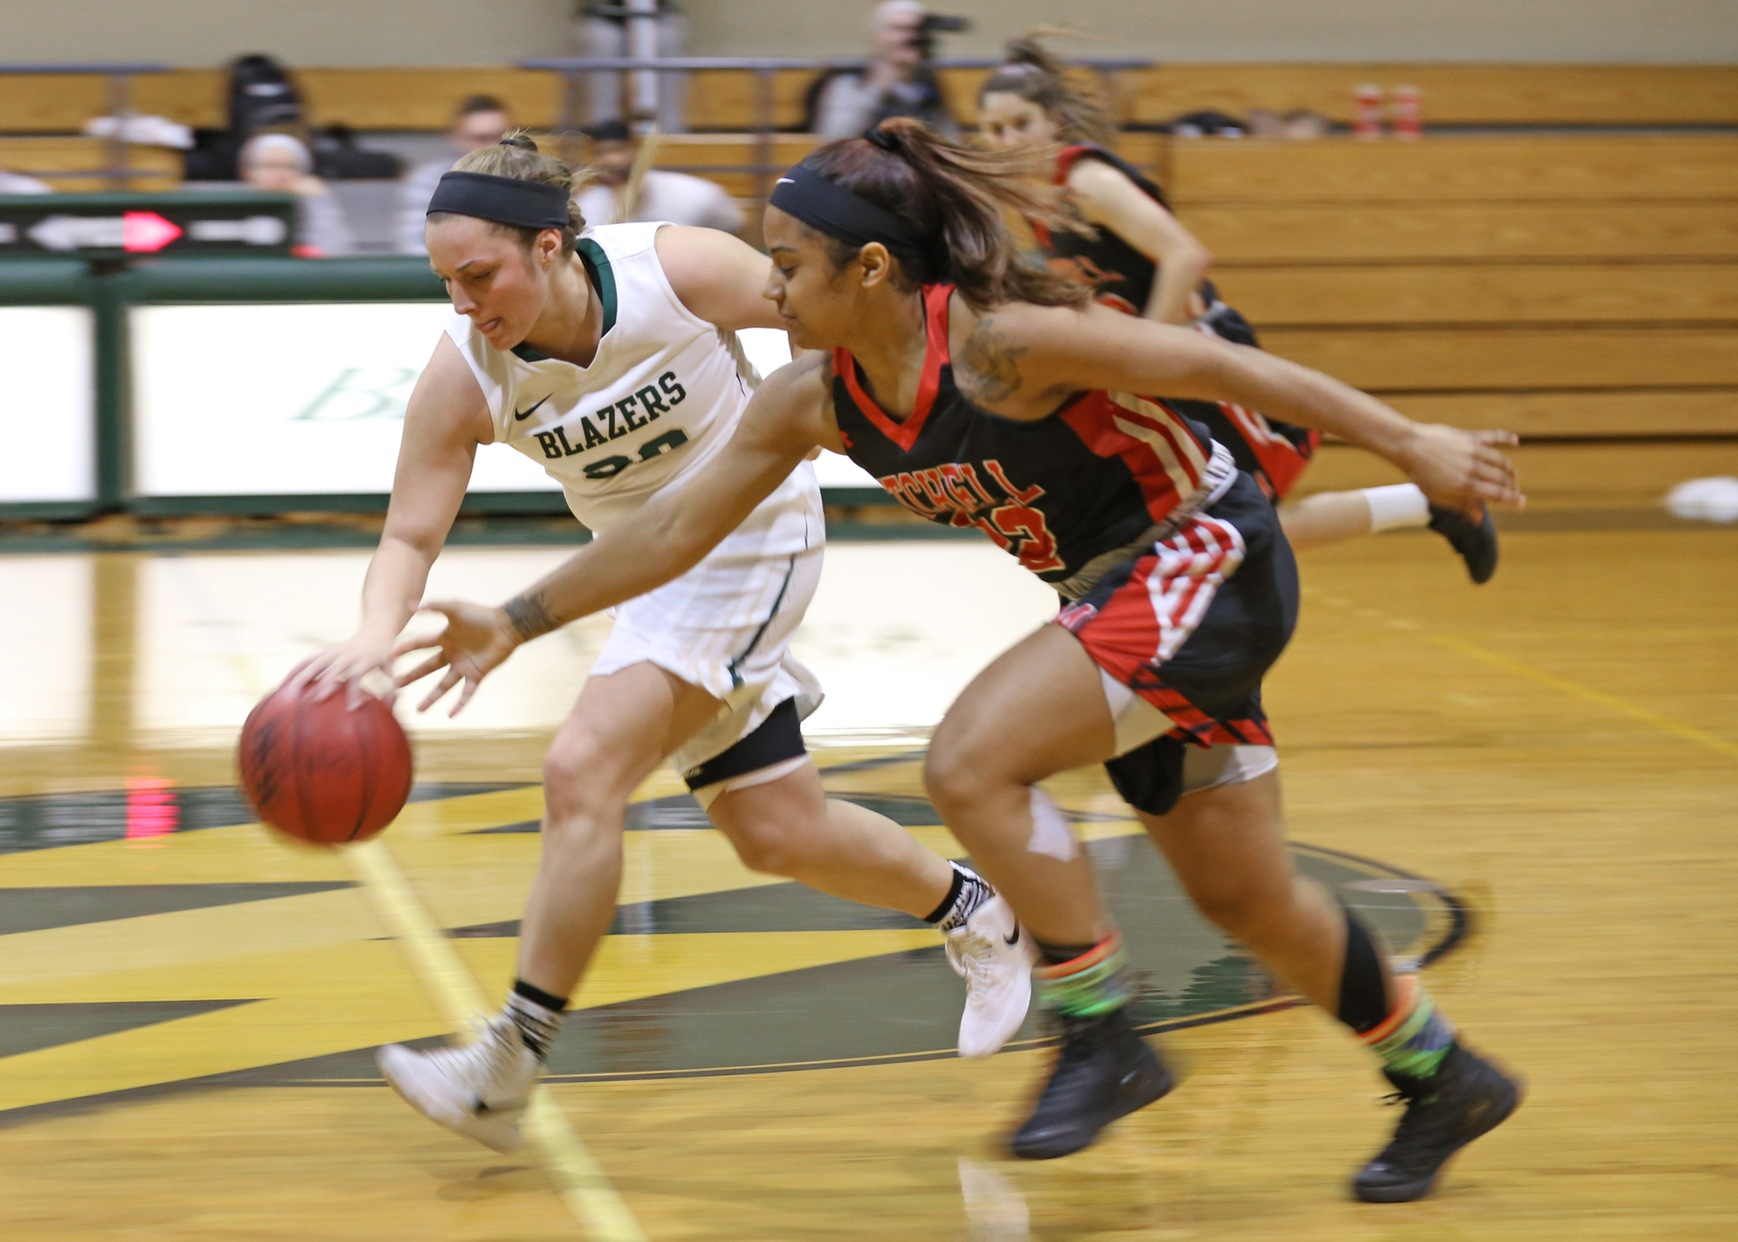 Women's Basketball Runs Out Of Time At Dean